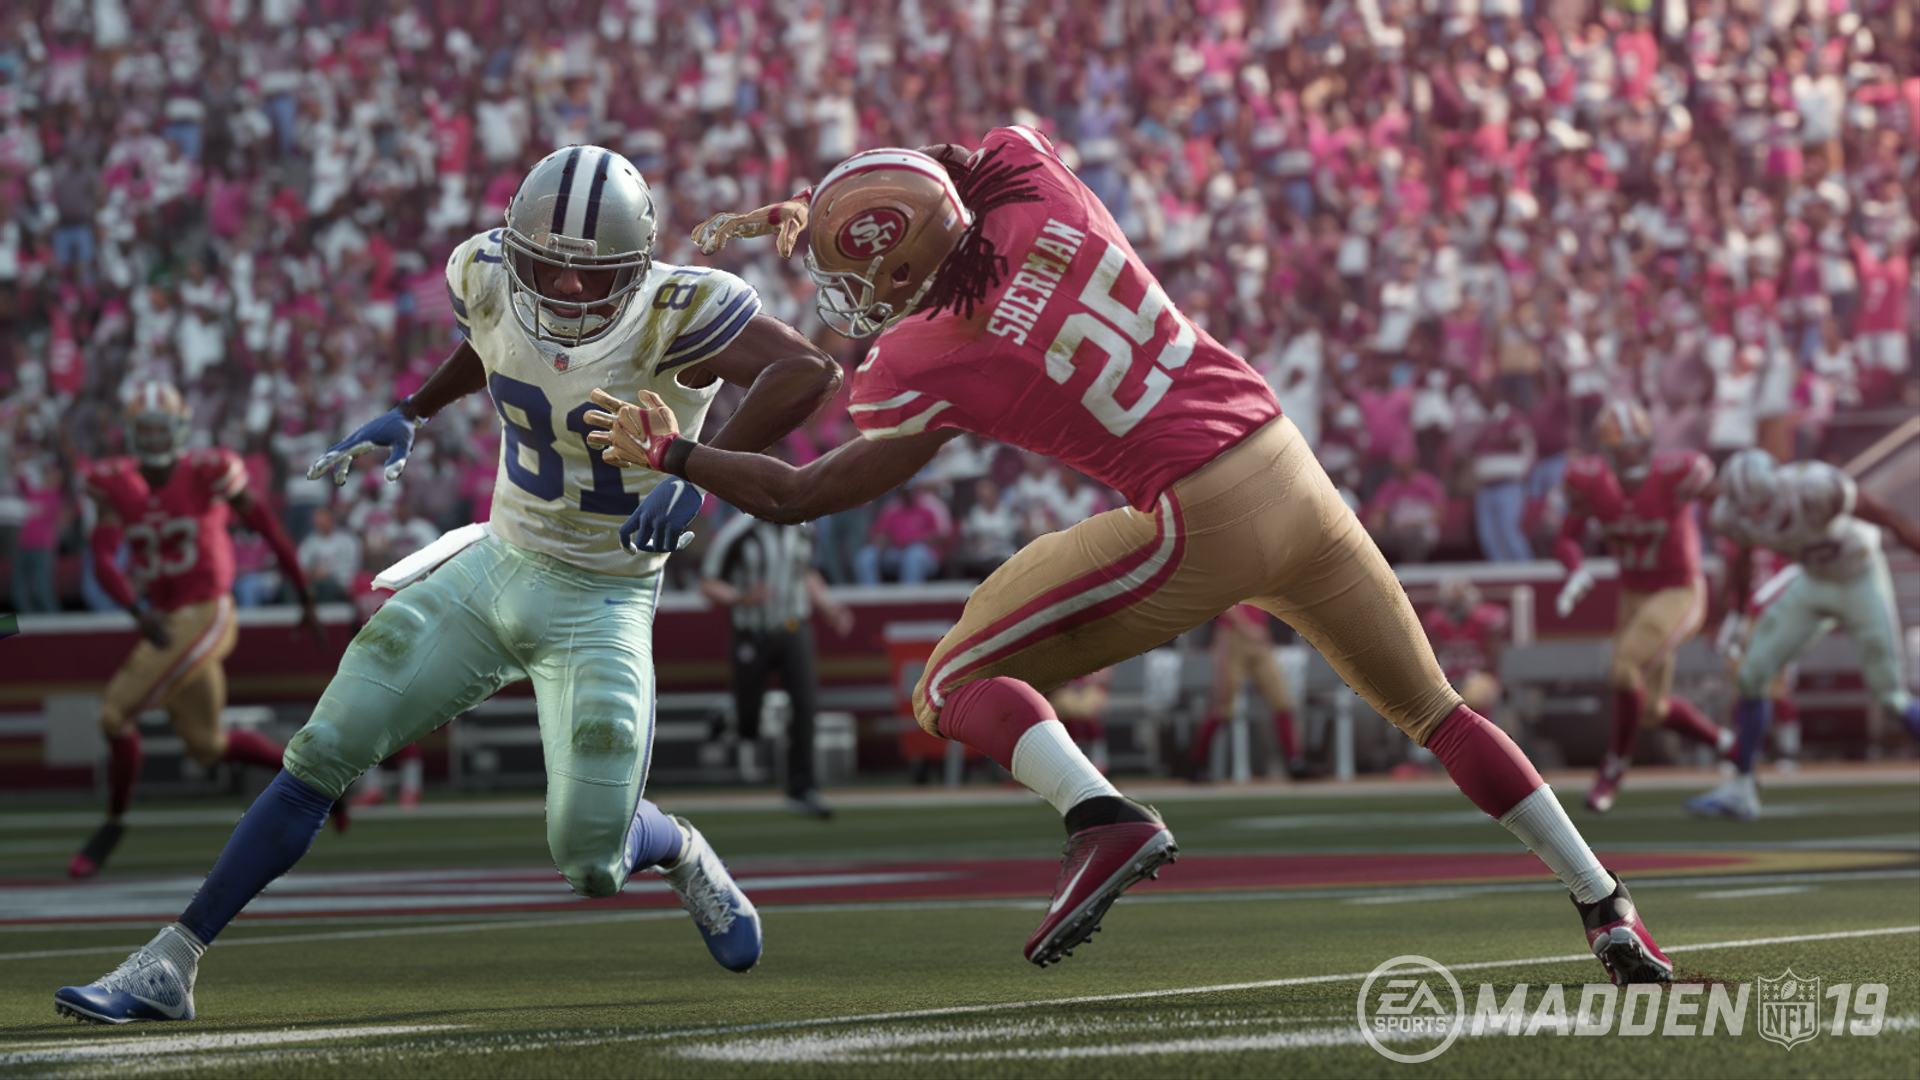 Madden 19 Vs Madden 18 9 Exciting New Madden 19 Features